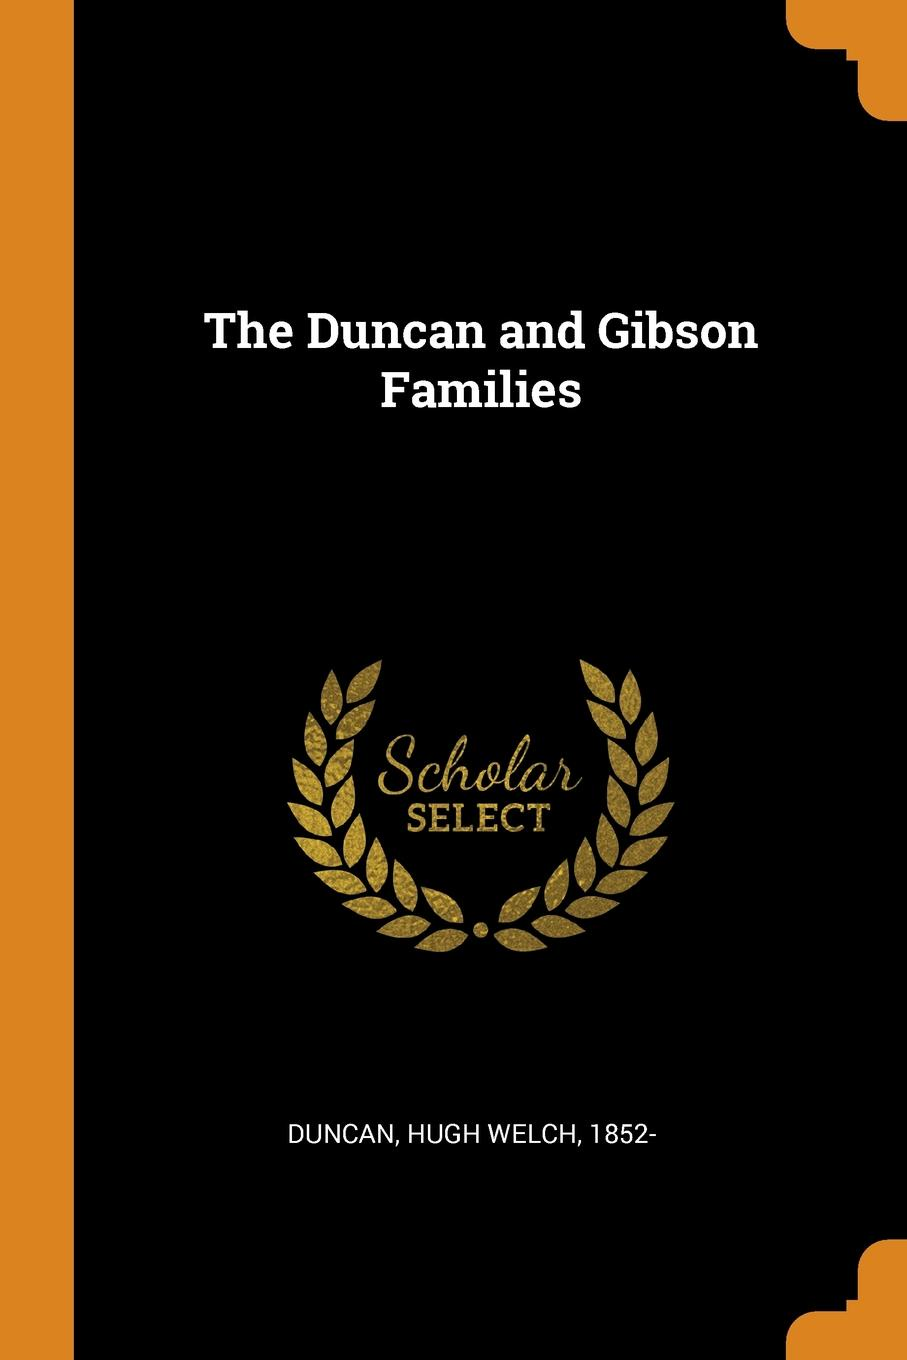 Hugh Welch Duncan The Duncan and Gibson Families